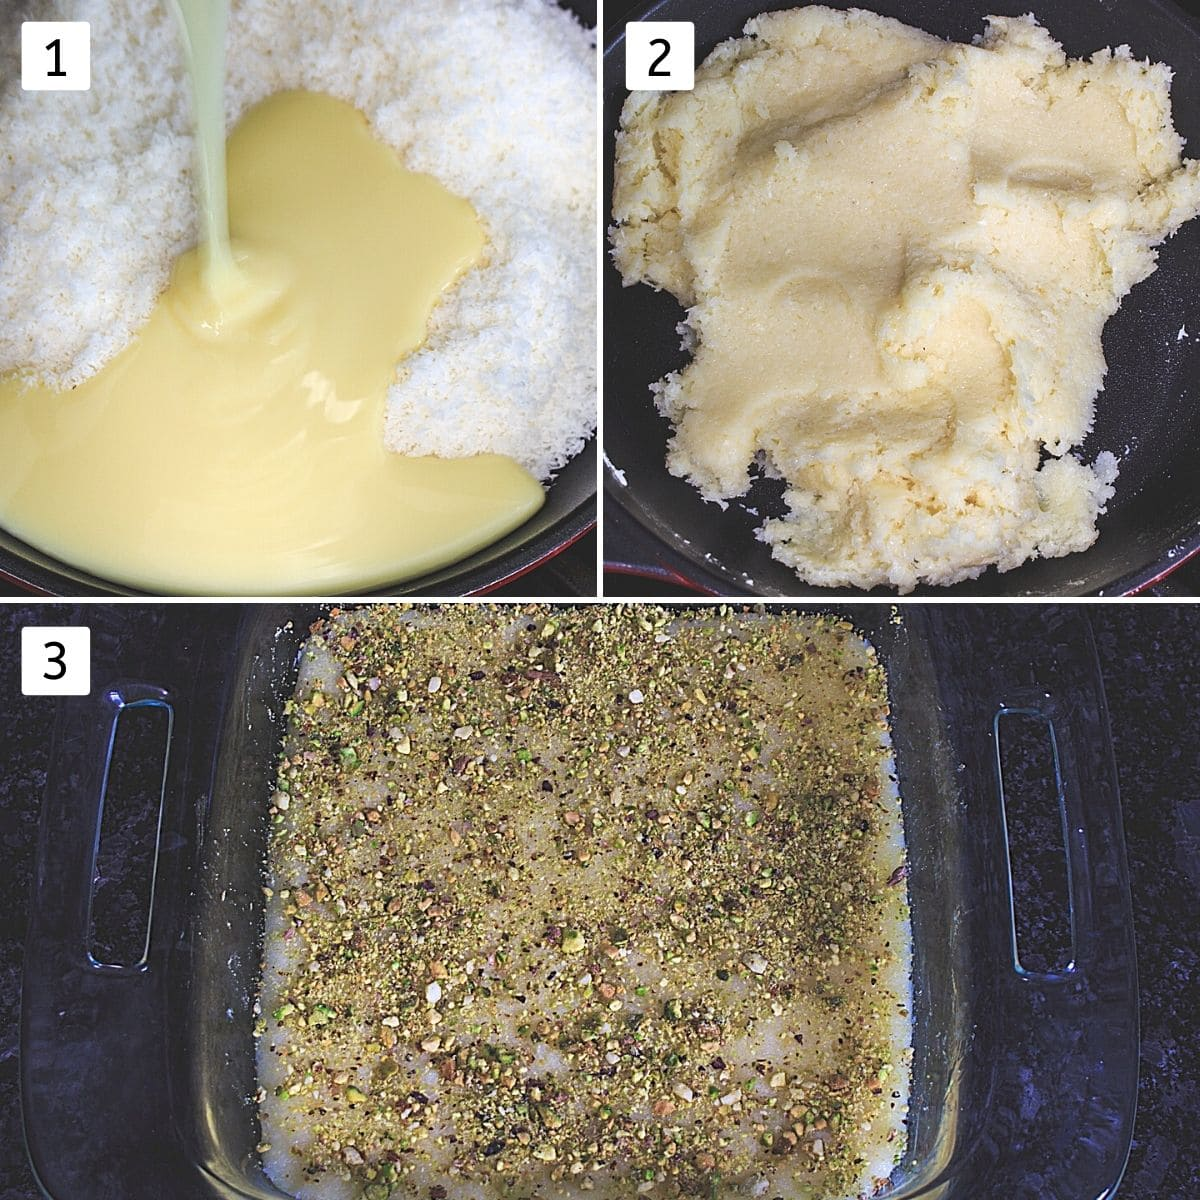 collage of 3 images showing coconut, condensed milk in a pan, cooking mixture, spread in greased pan